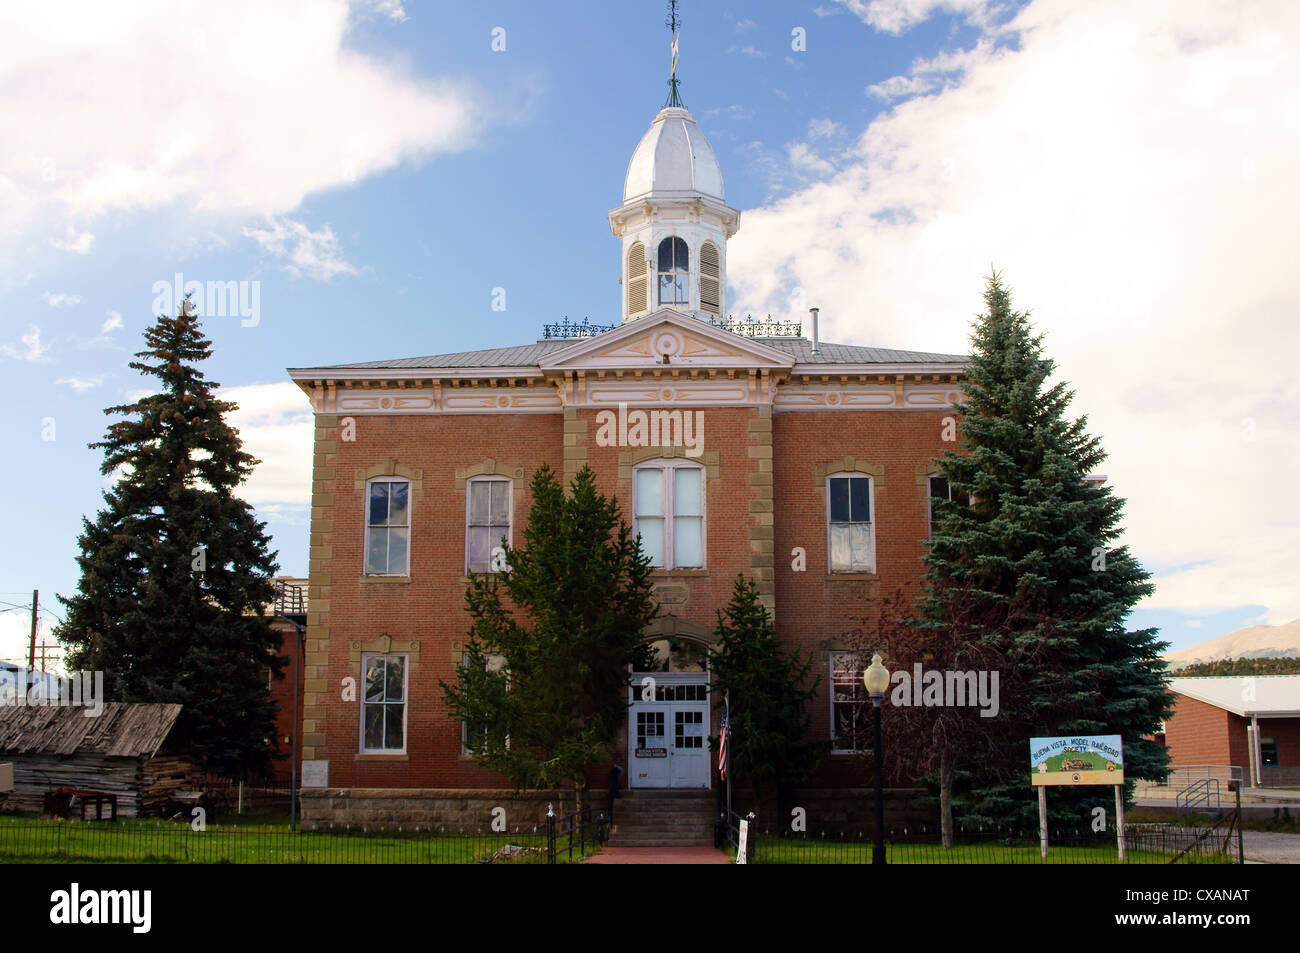 buena vista heritage museum colorado co old chaffee county courthouse lake vistans granite ernest wilbur john - Stock Image